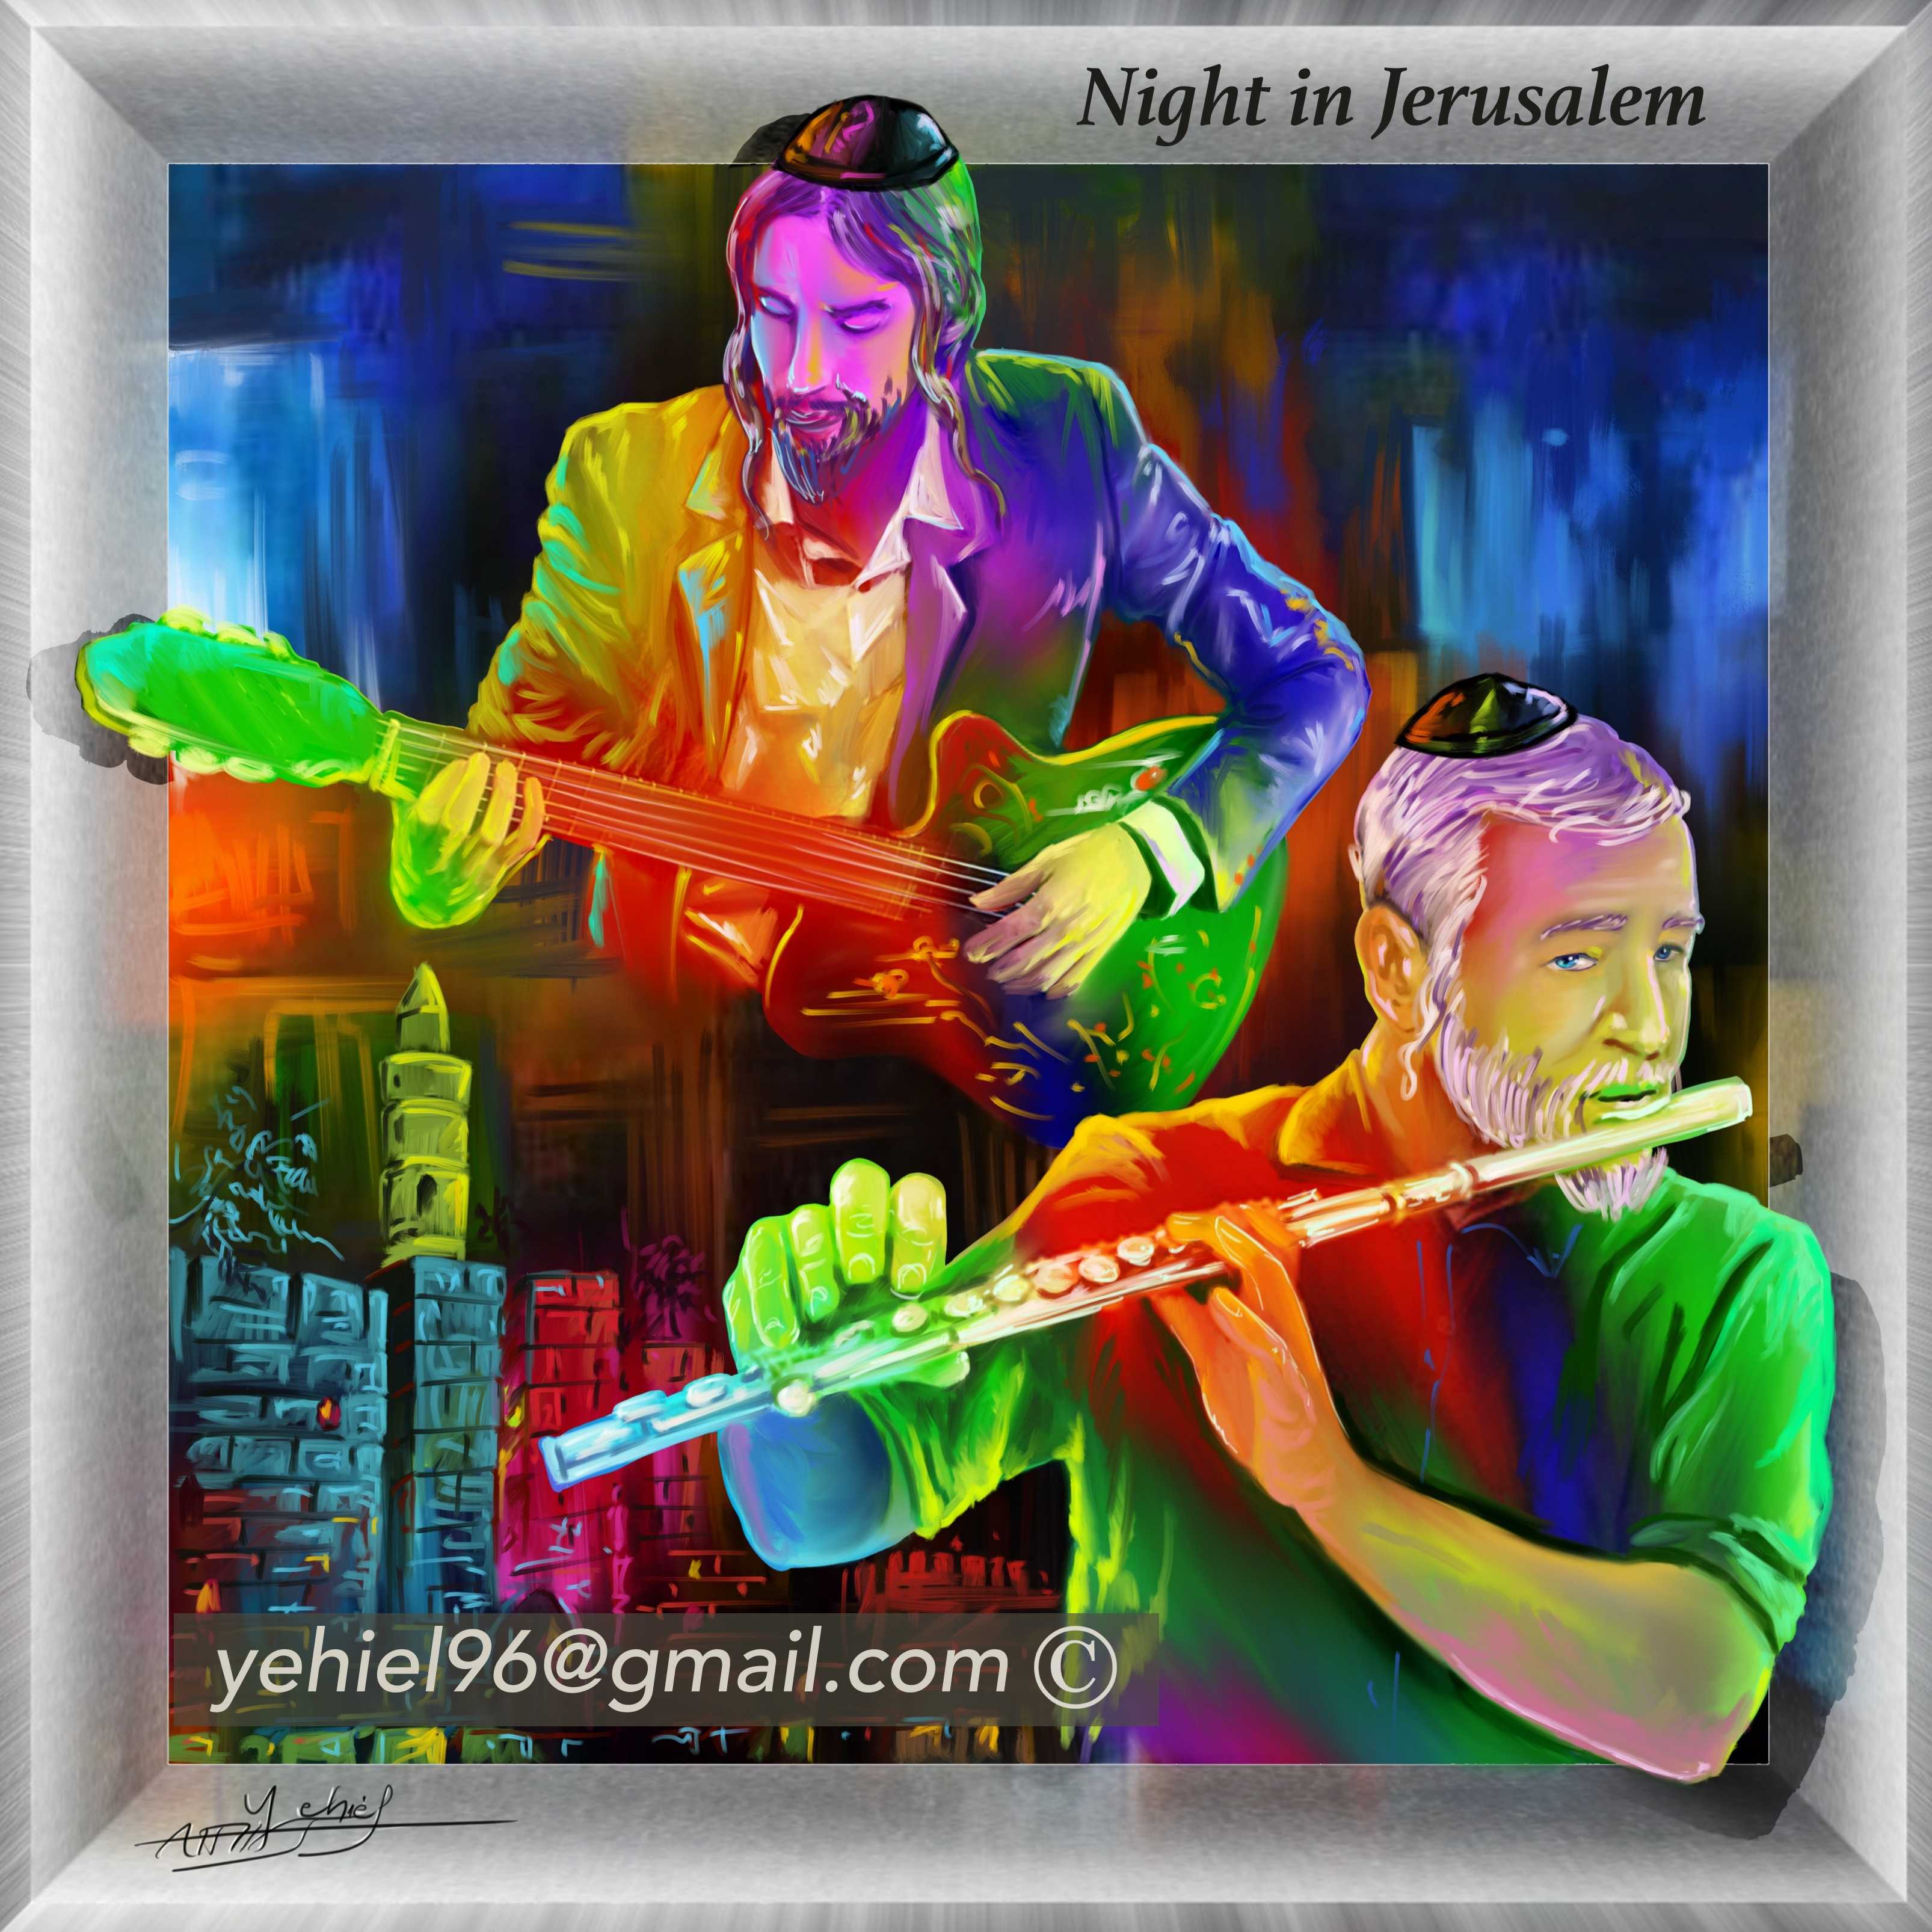 Night in Jerusalem